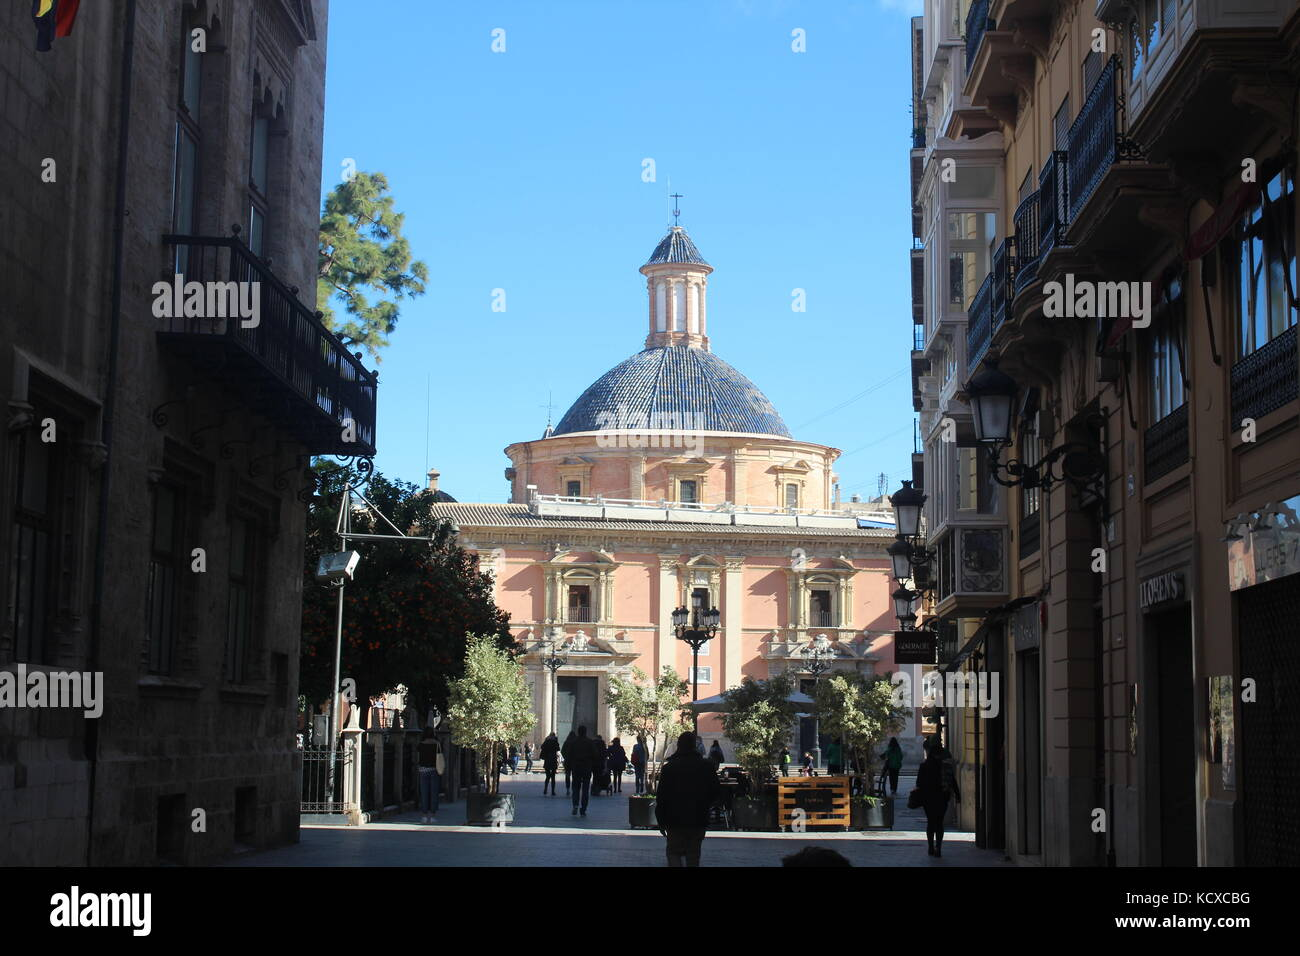 A view through the streets of valencia, toward the plaza de la virgen and the Basílica de la Mare de Déu - Stock Image